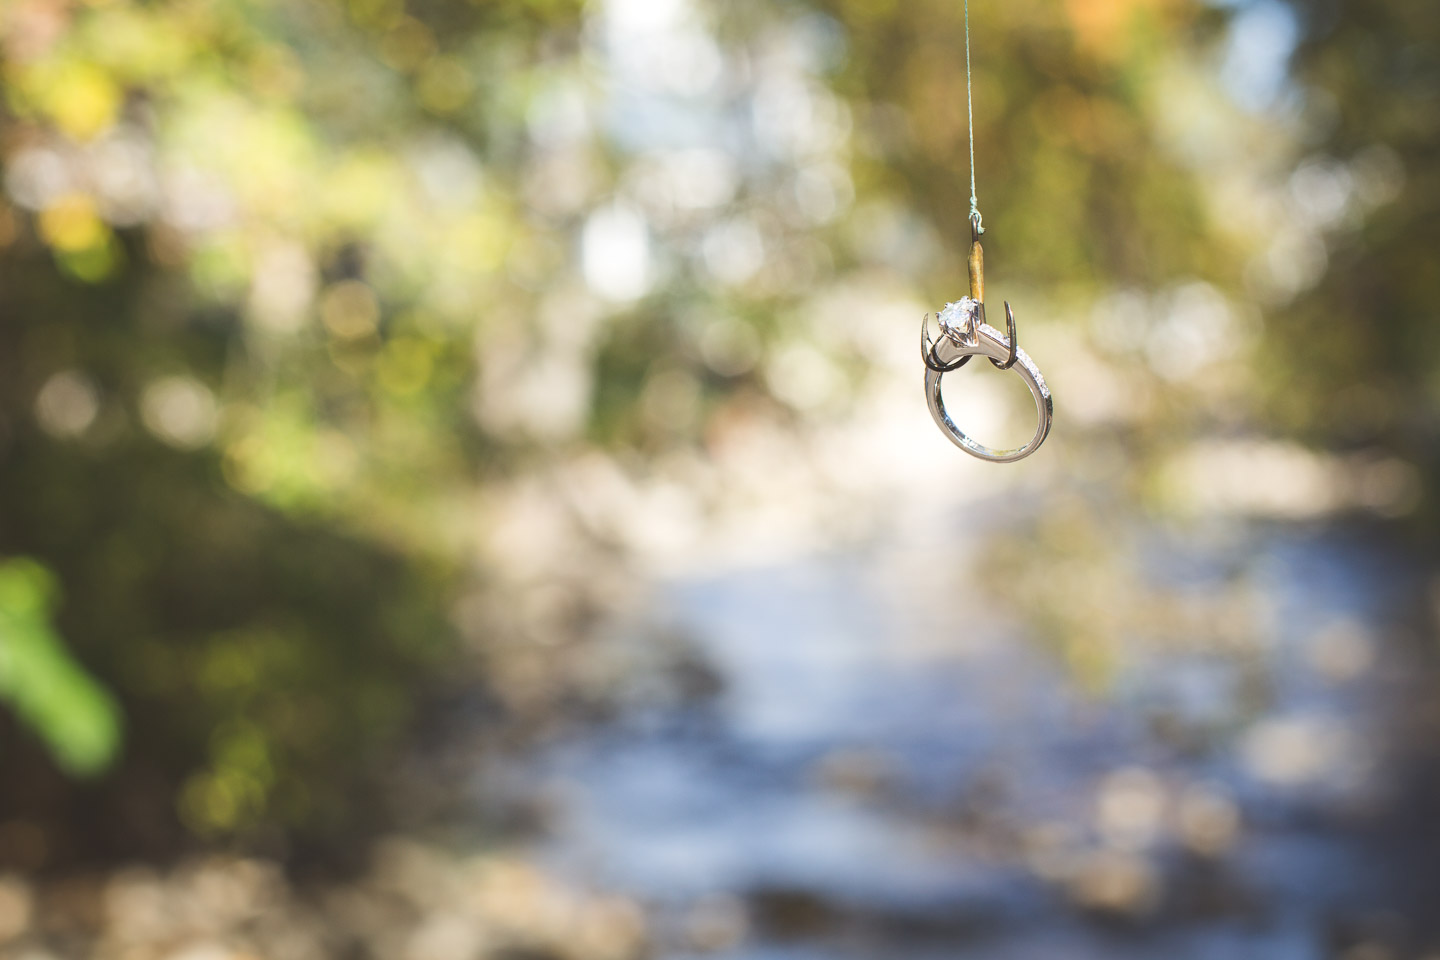 Engagement-Northville-Mill-Race-Village-David-Danielle-Fishing-Hook-Engagement-Ring